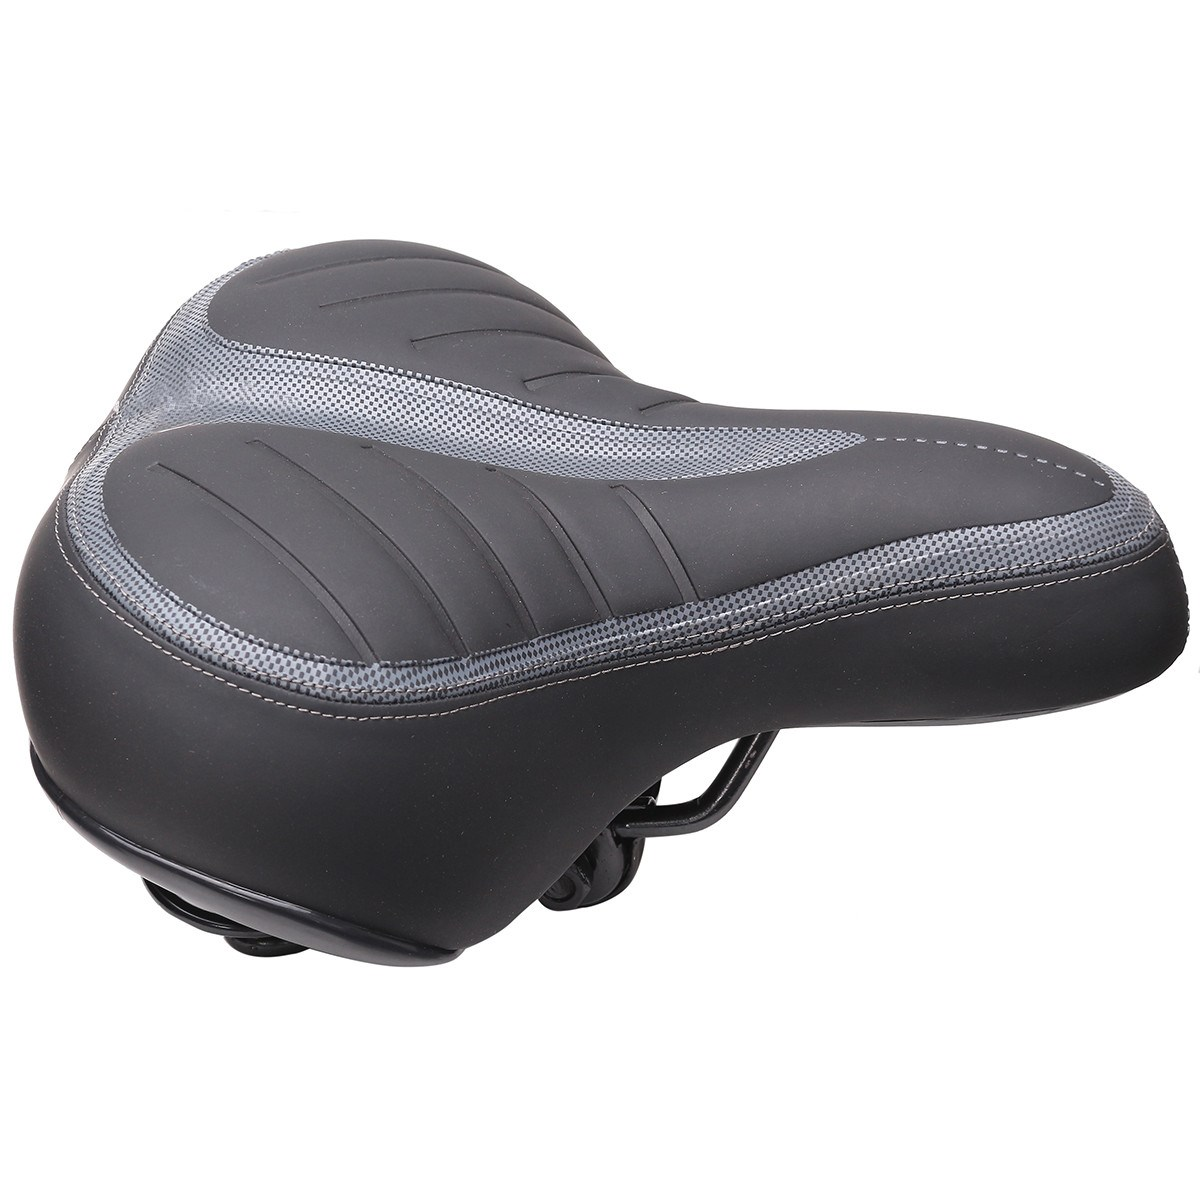 Bicycle Saddle MTB Bike Bicycle Parts wide road Cycling Seat Mat Comfortable Cushion Soft Seat Cover for Bike Bicycle parts 2017 sale selim selle sella carbonio wide bicycle seat thicken bike saddle bicicleta cycling mtb cushion asiento sponge soft